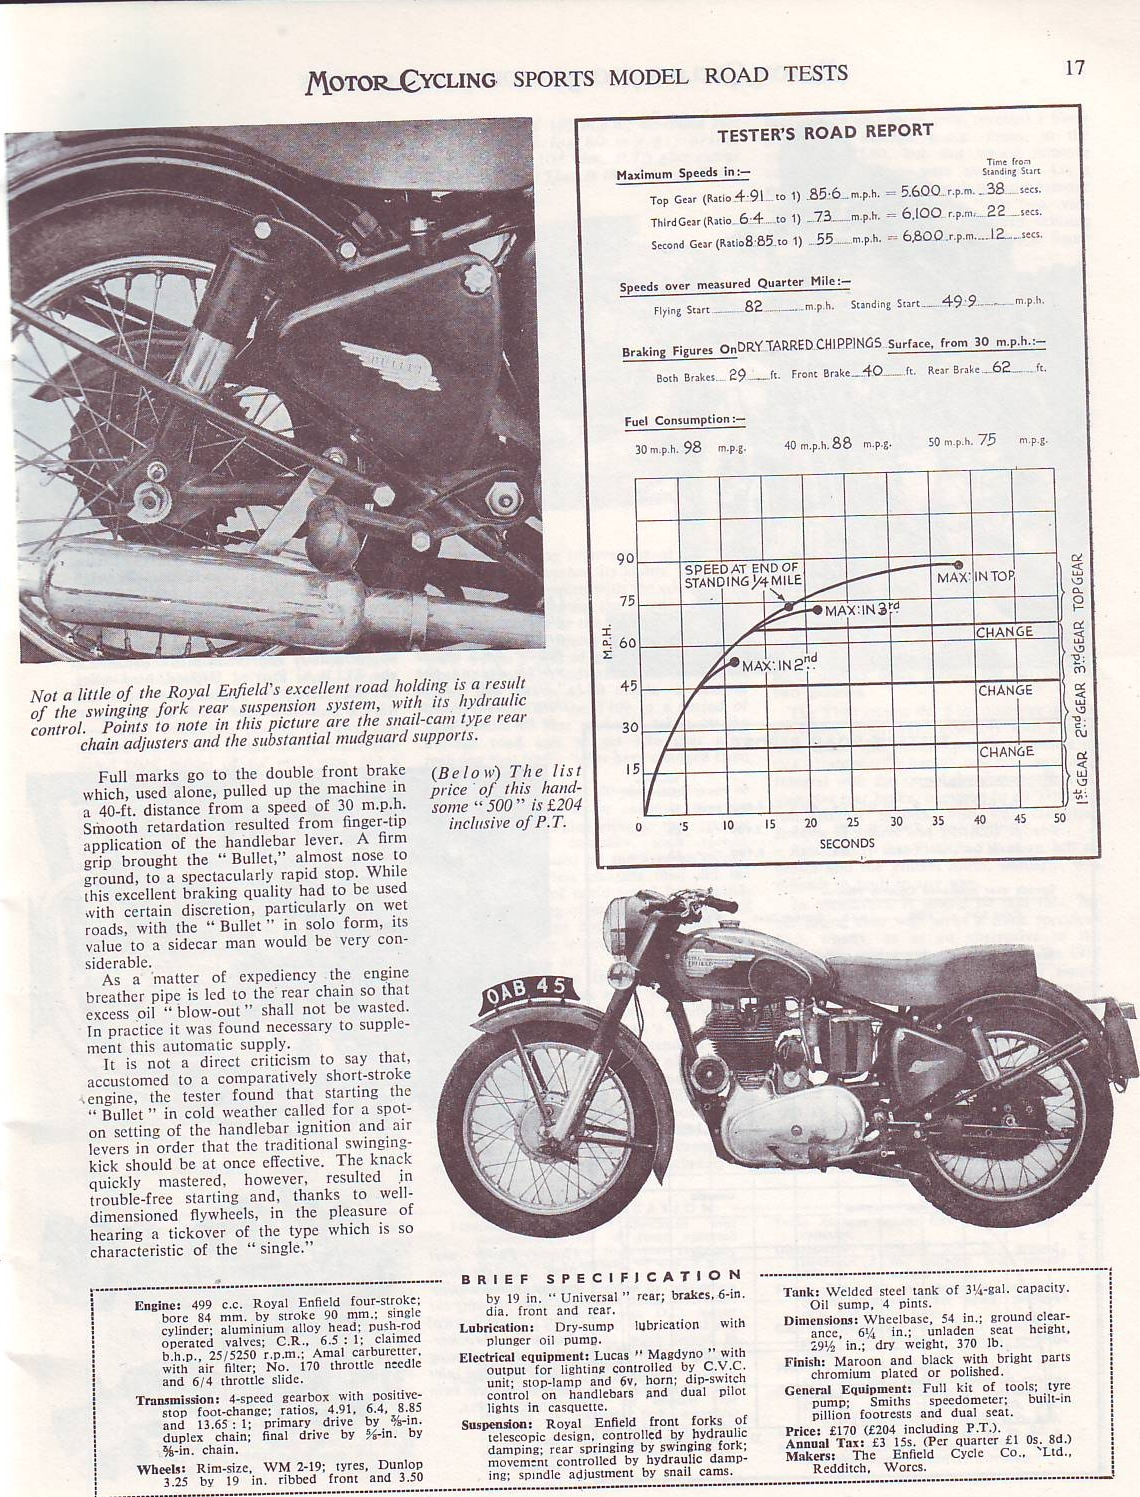 Royal Enfield Resources 12v Wiring Diagram And Of Course The We Need Original Redditch 500 Too